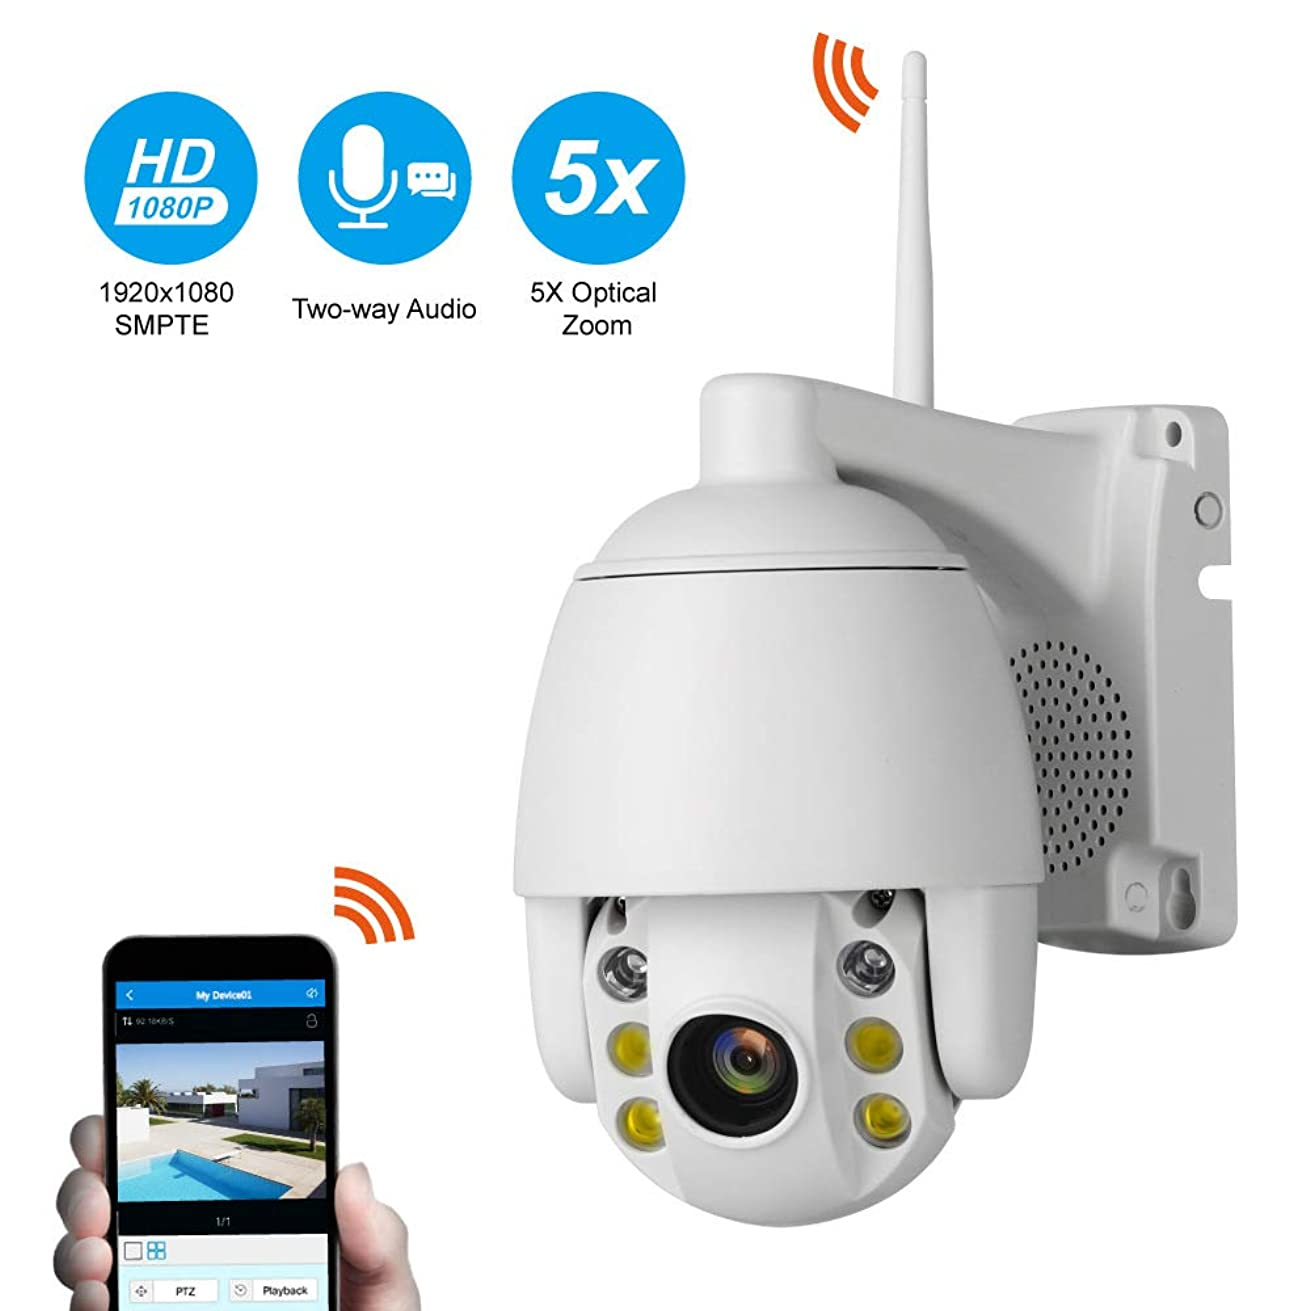 GOUP WiFi Webcam, 2 Million HD Infrared, 5X Zoom with 16G Memory Card, Monitoring System Indoor and Outdoor Control Monitor, WiFi Remote Camera